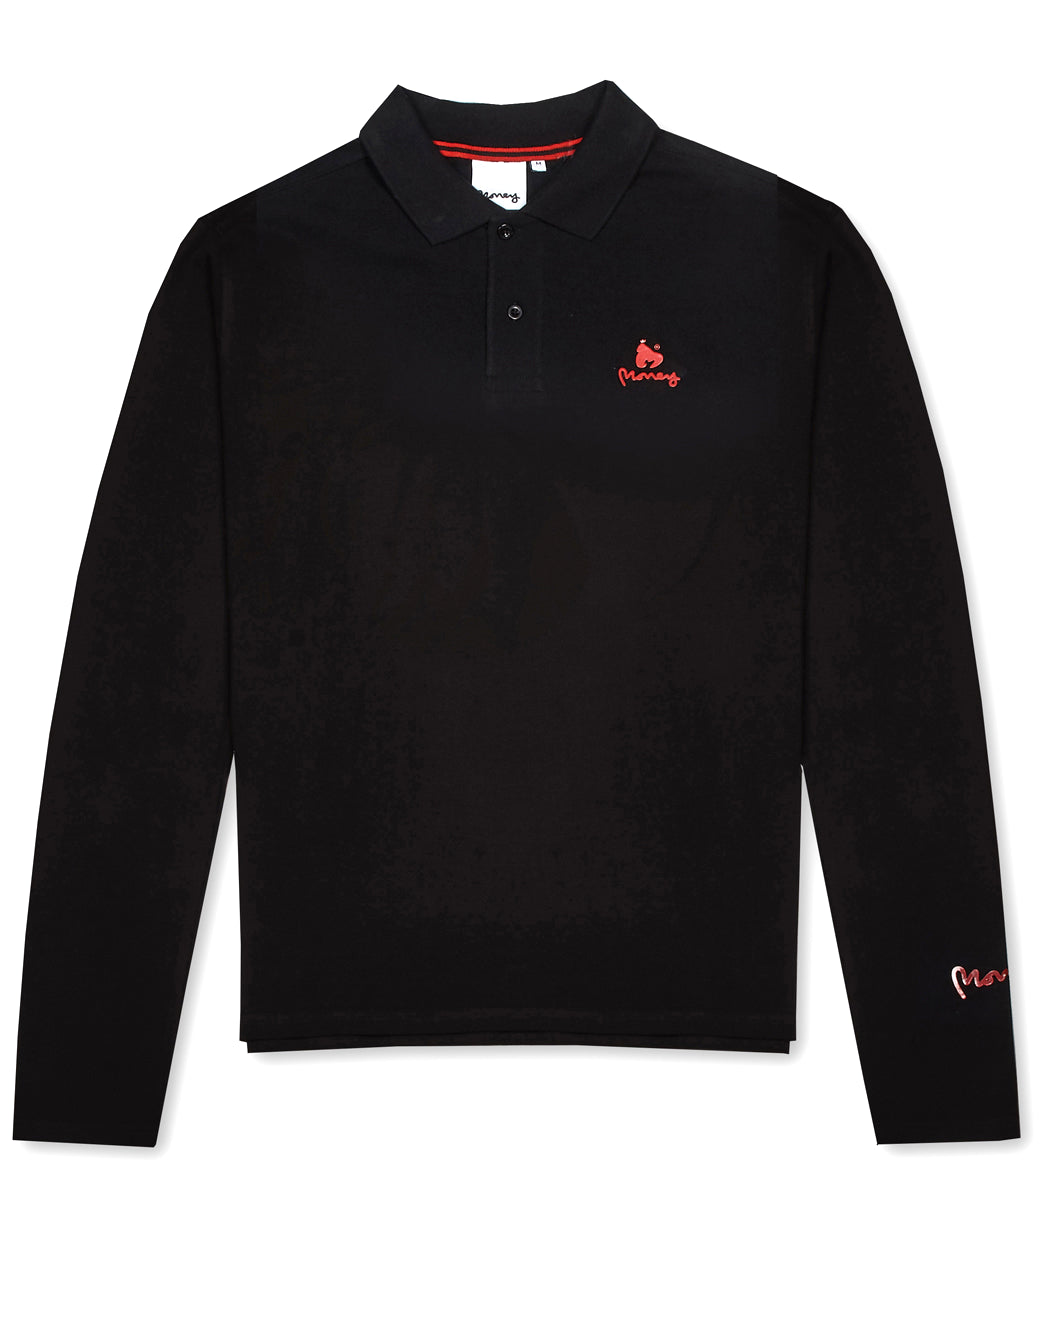 Money Clothing polo shirt in black